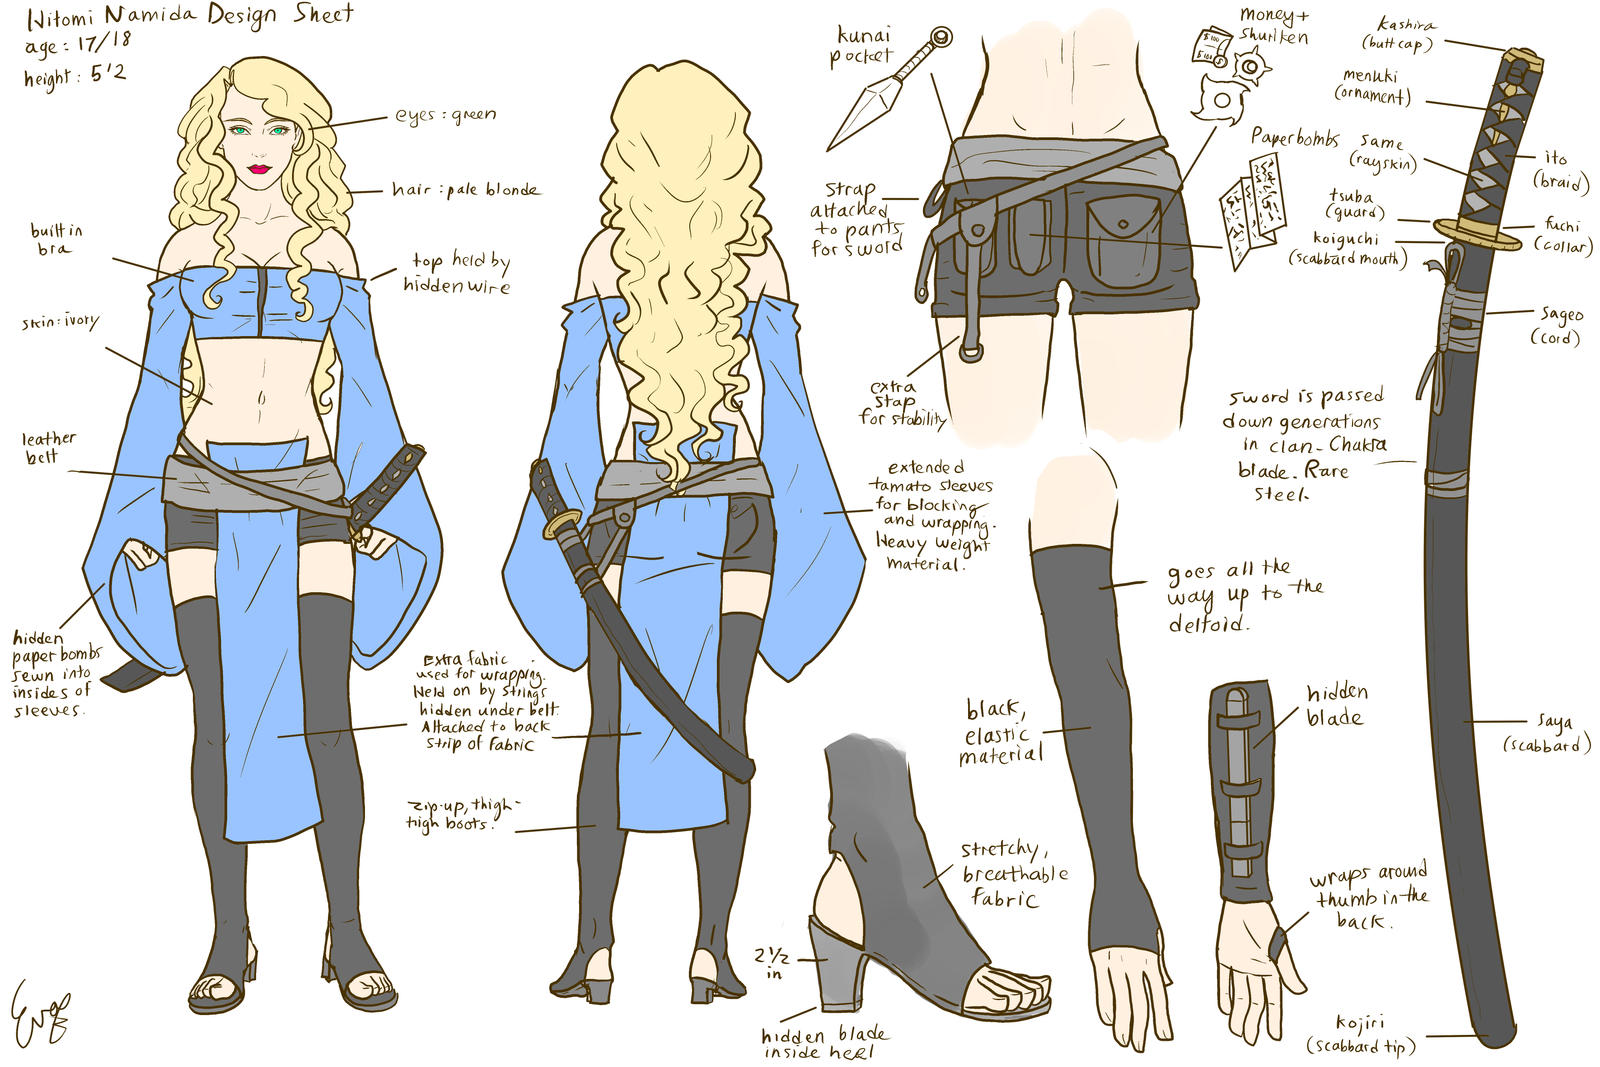 Custom Character Sheet Design : Hitomi character design sheet by invisibleninja on